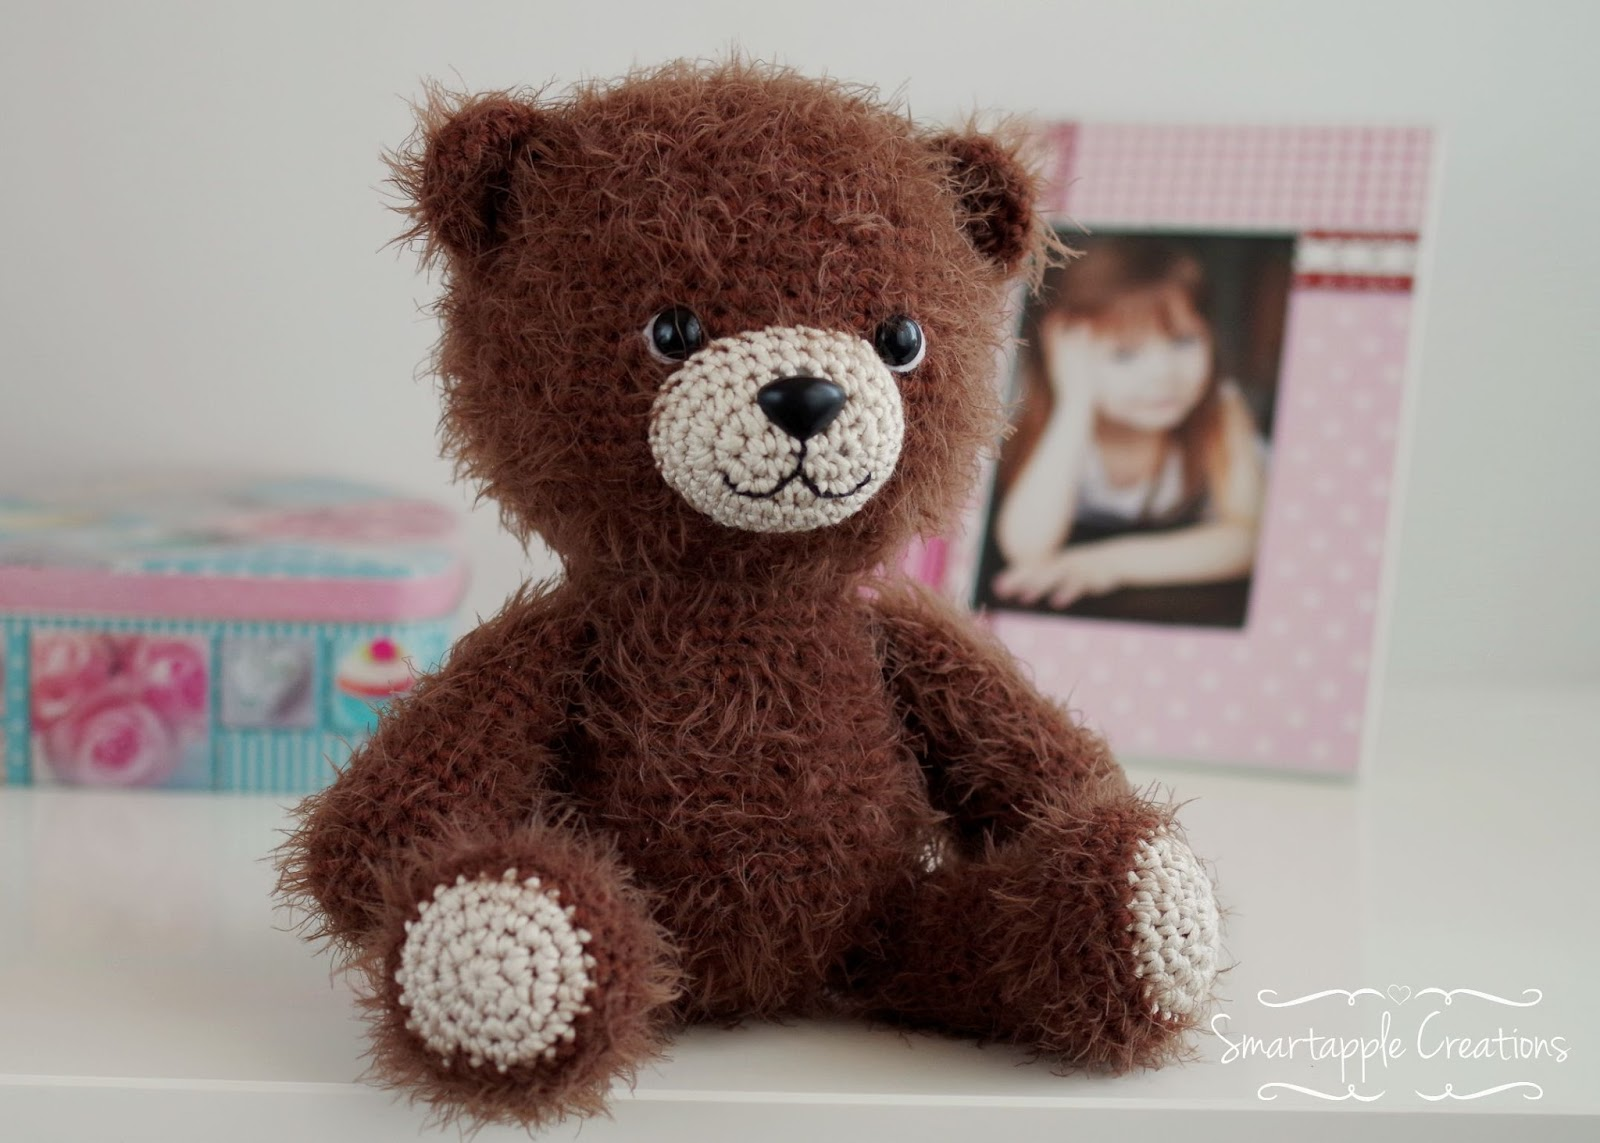 02264e3b41a I was so in love with the teddy bear myself so I fought the desire to keep  it to myself. It turned out so cuddly and soft and I was sure it ...